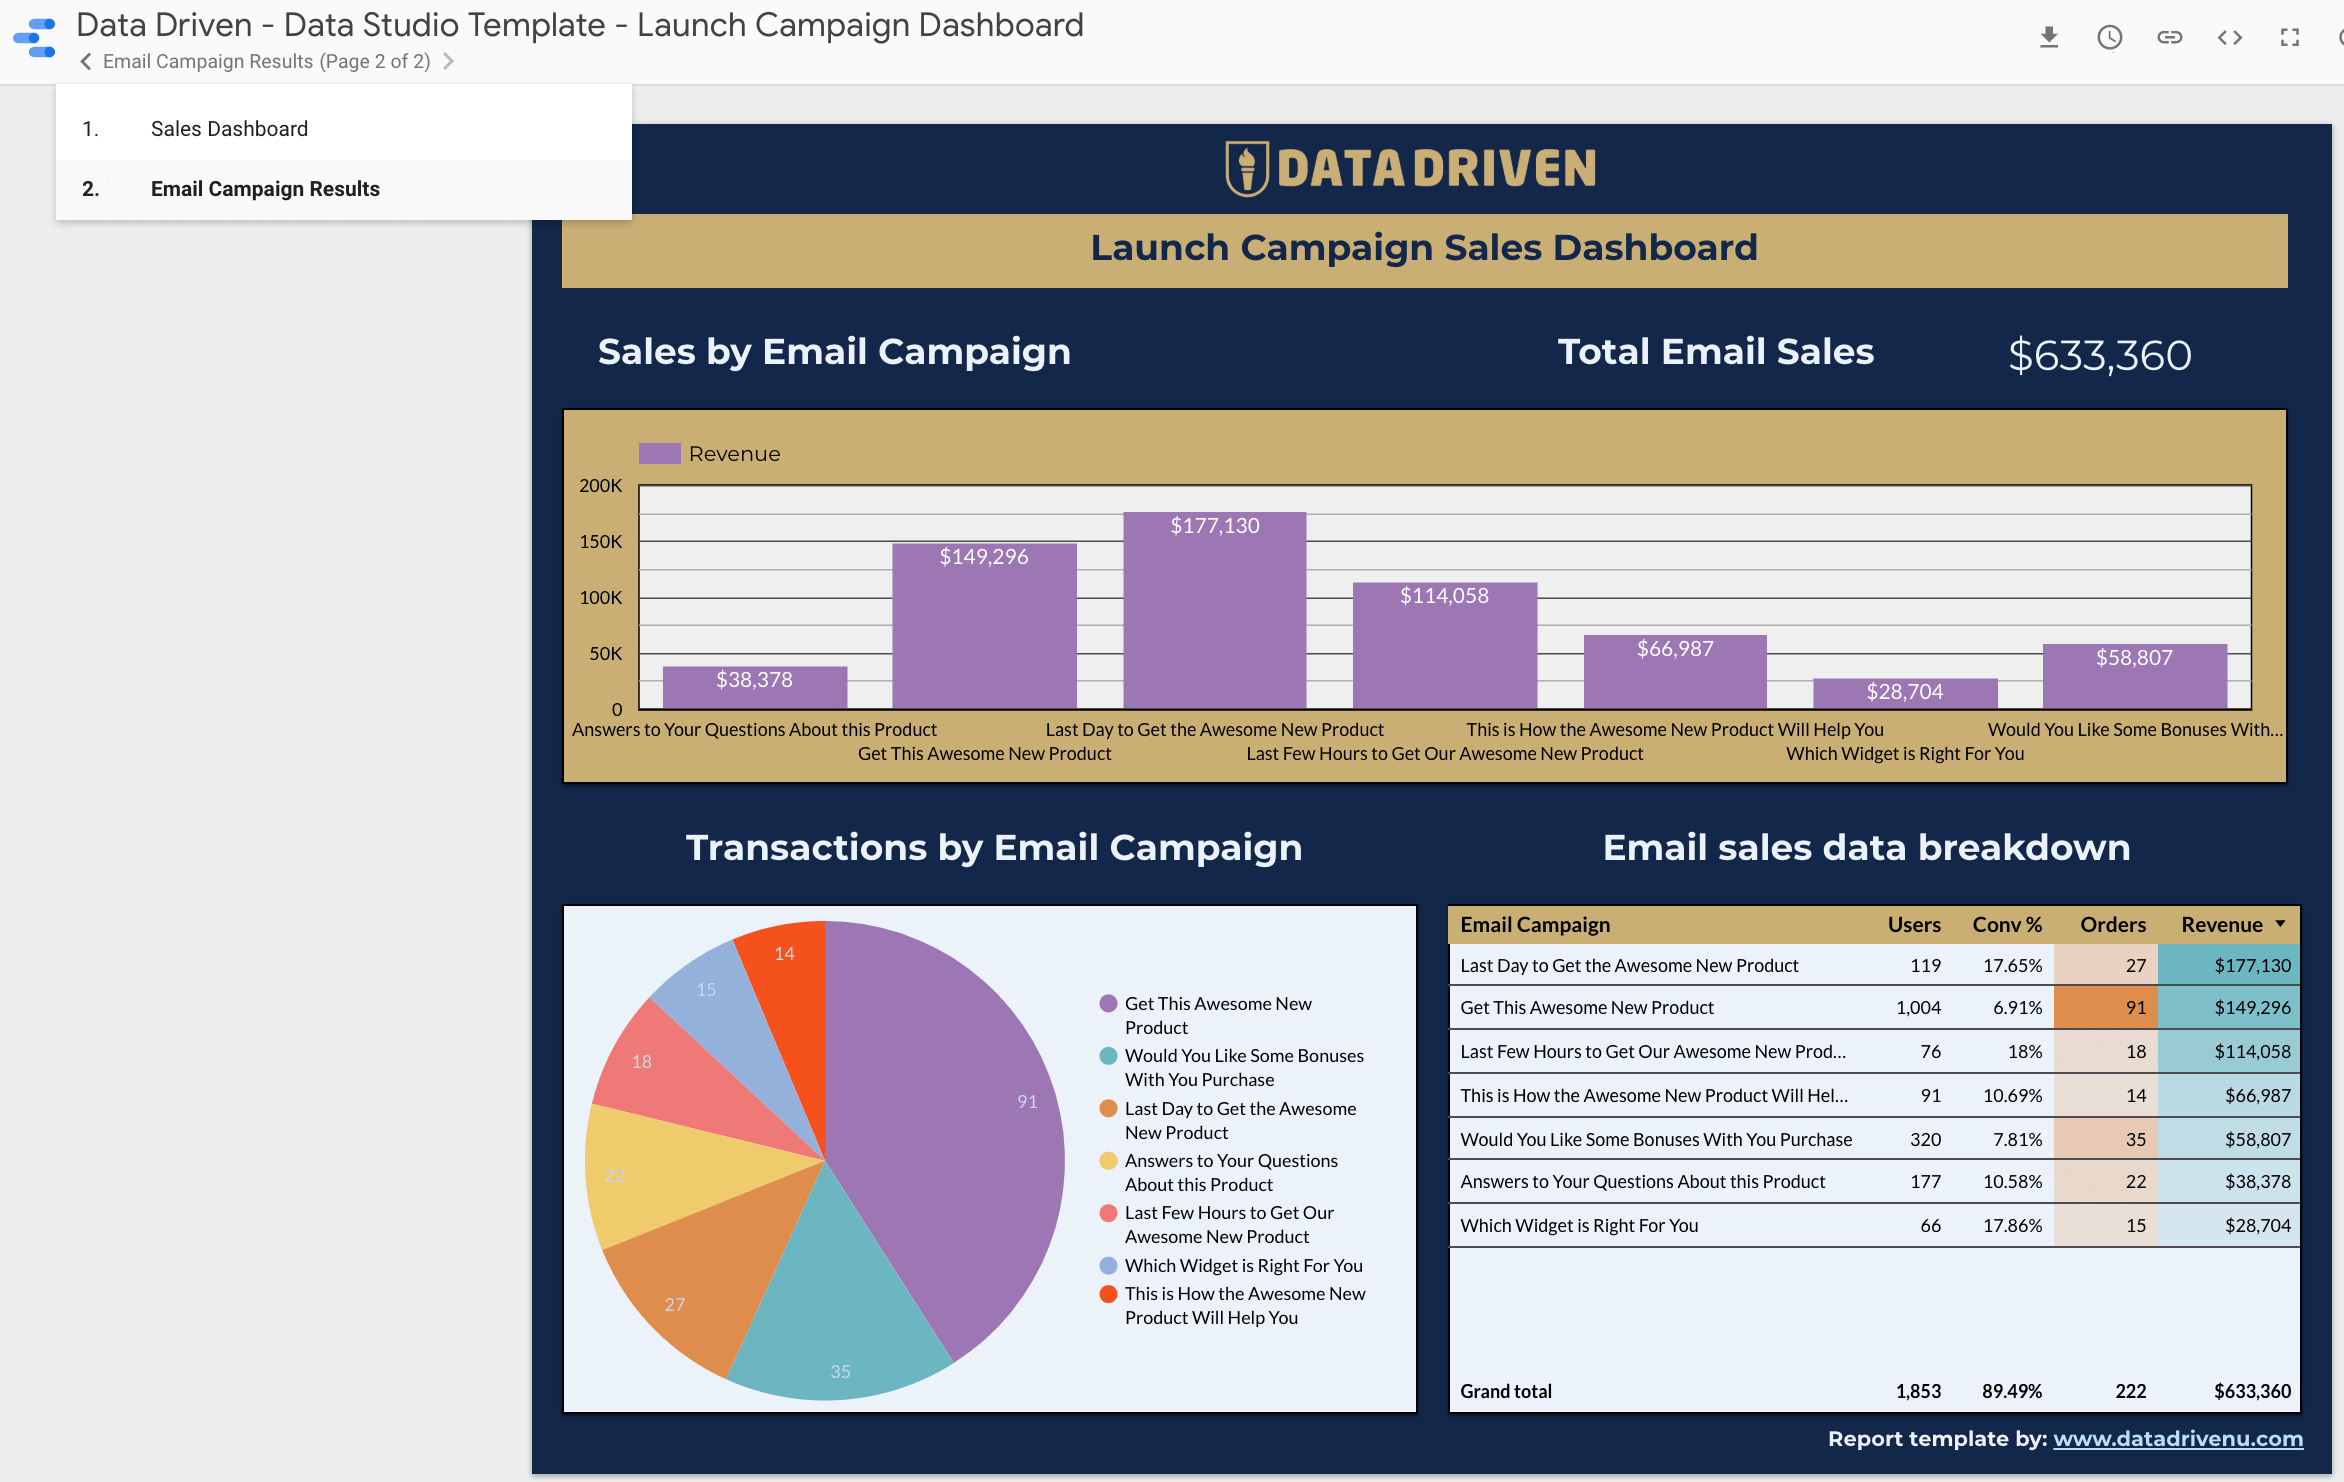 Email Campaign GDS Dashboard Template